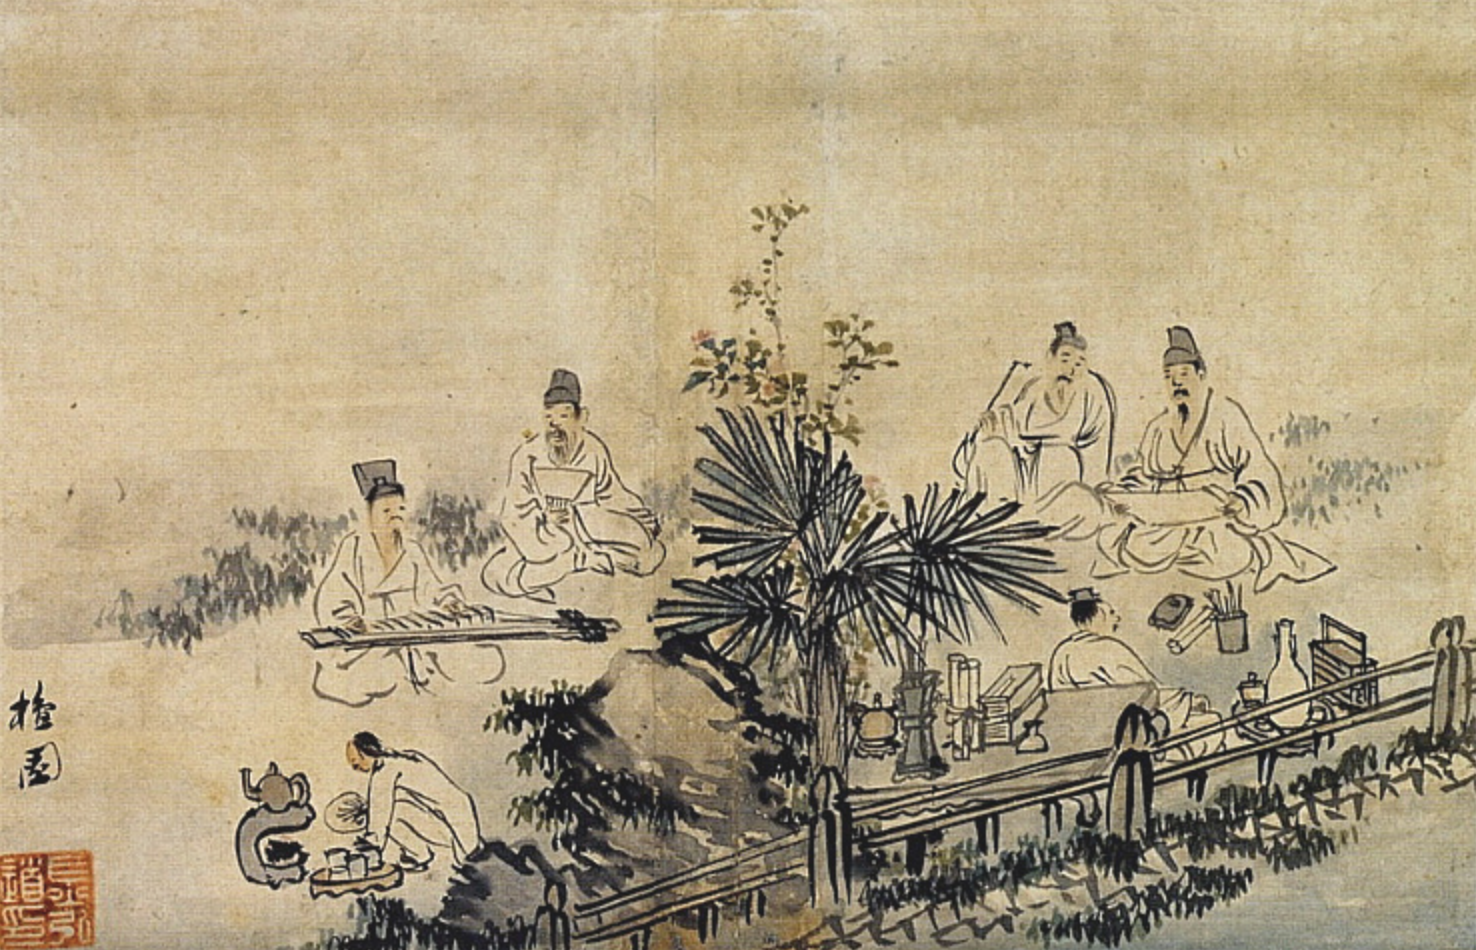 A young apprentice is brewing tea while the intellectuals enjoy music and discussions in nature .Kunhyundo (군현도群賢圖), Kim Hong-do (1745 - 1806).